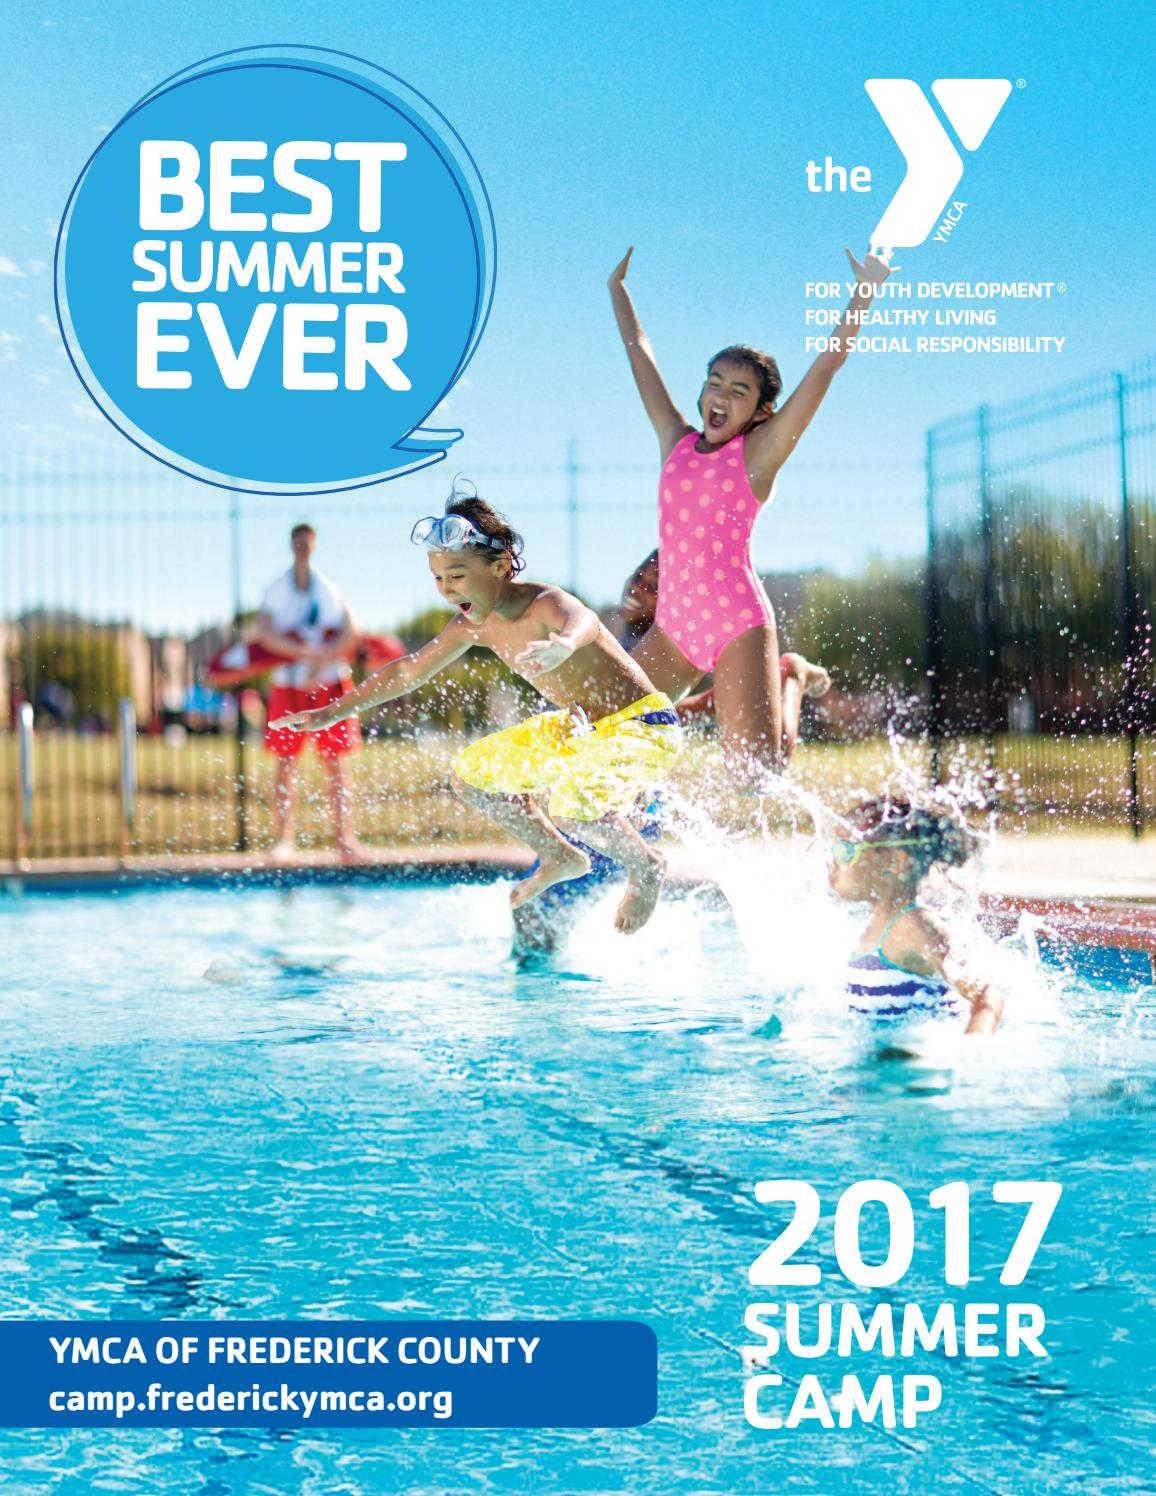 Summer Camp Book - 2017 by YMCA OF FREDERICK COUNTY - Issuu